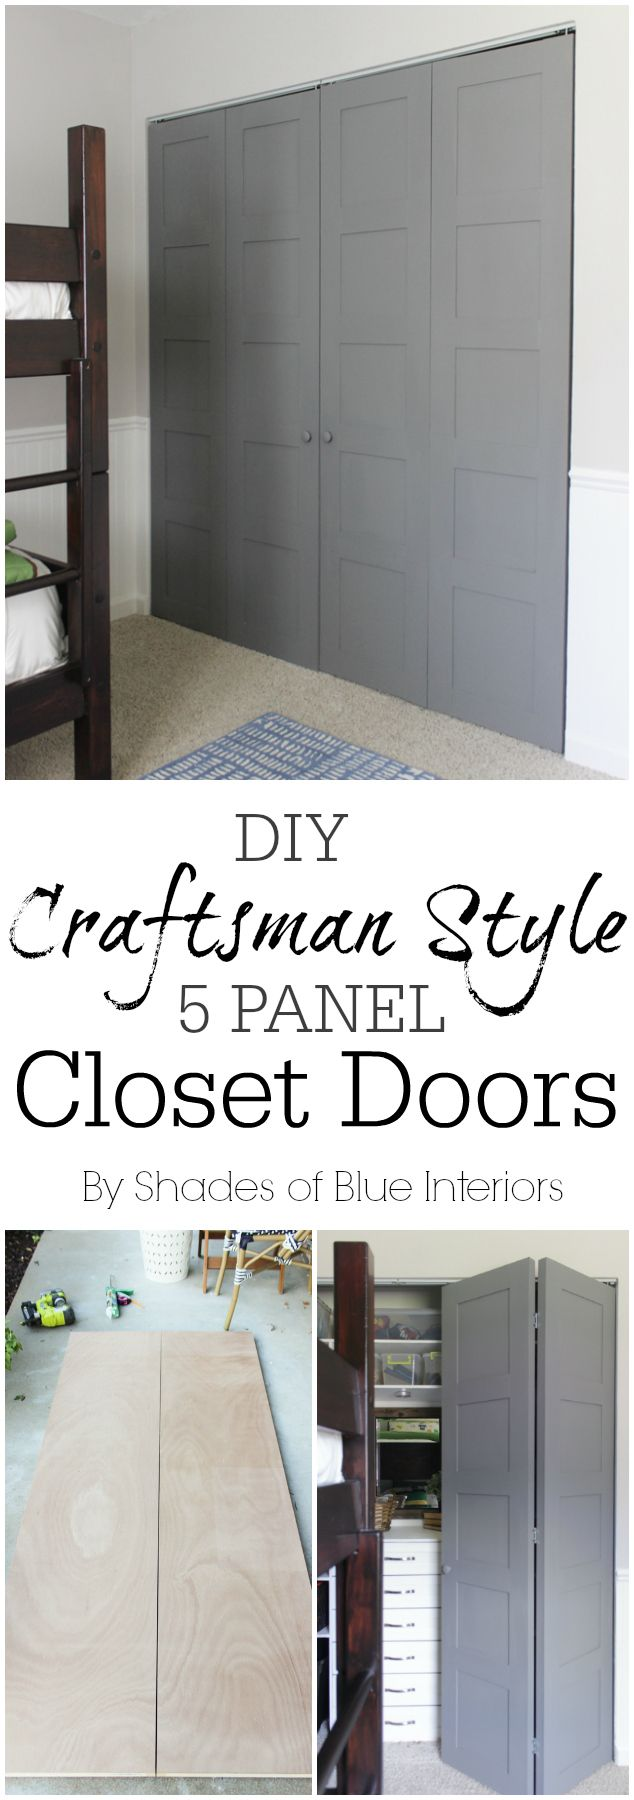 DIY Craftsman Style 5 panel closet doors -bifold closet door update